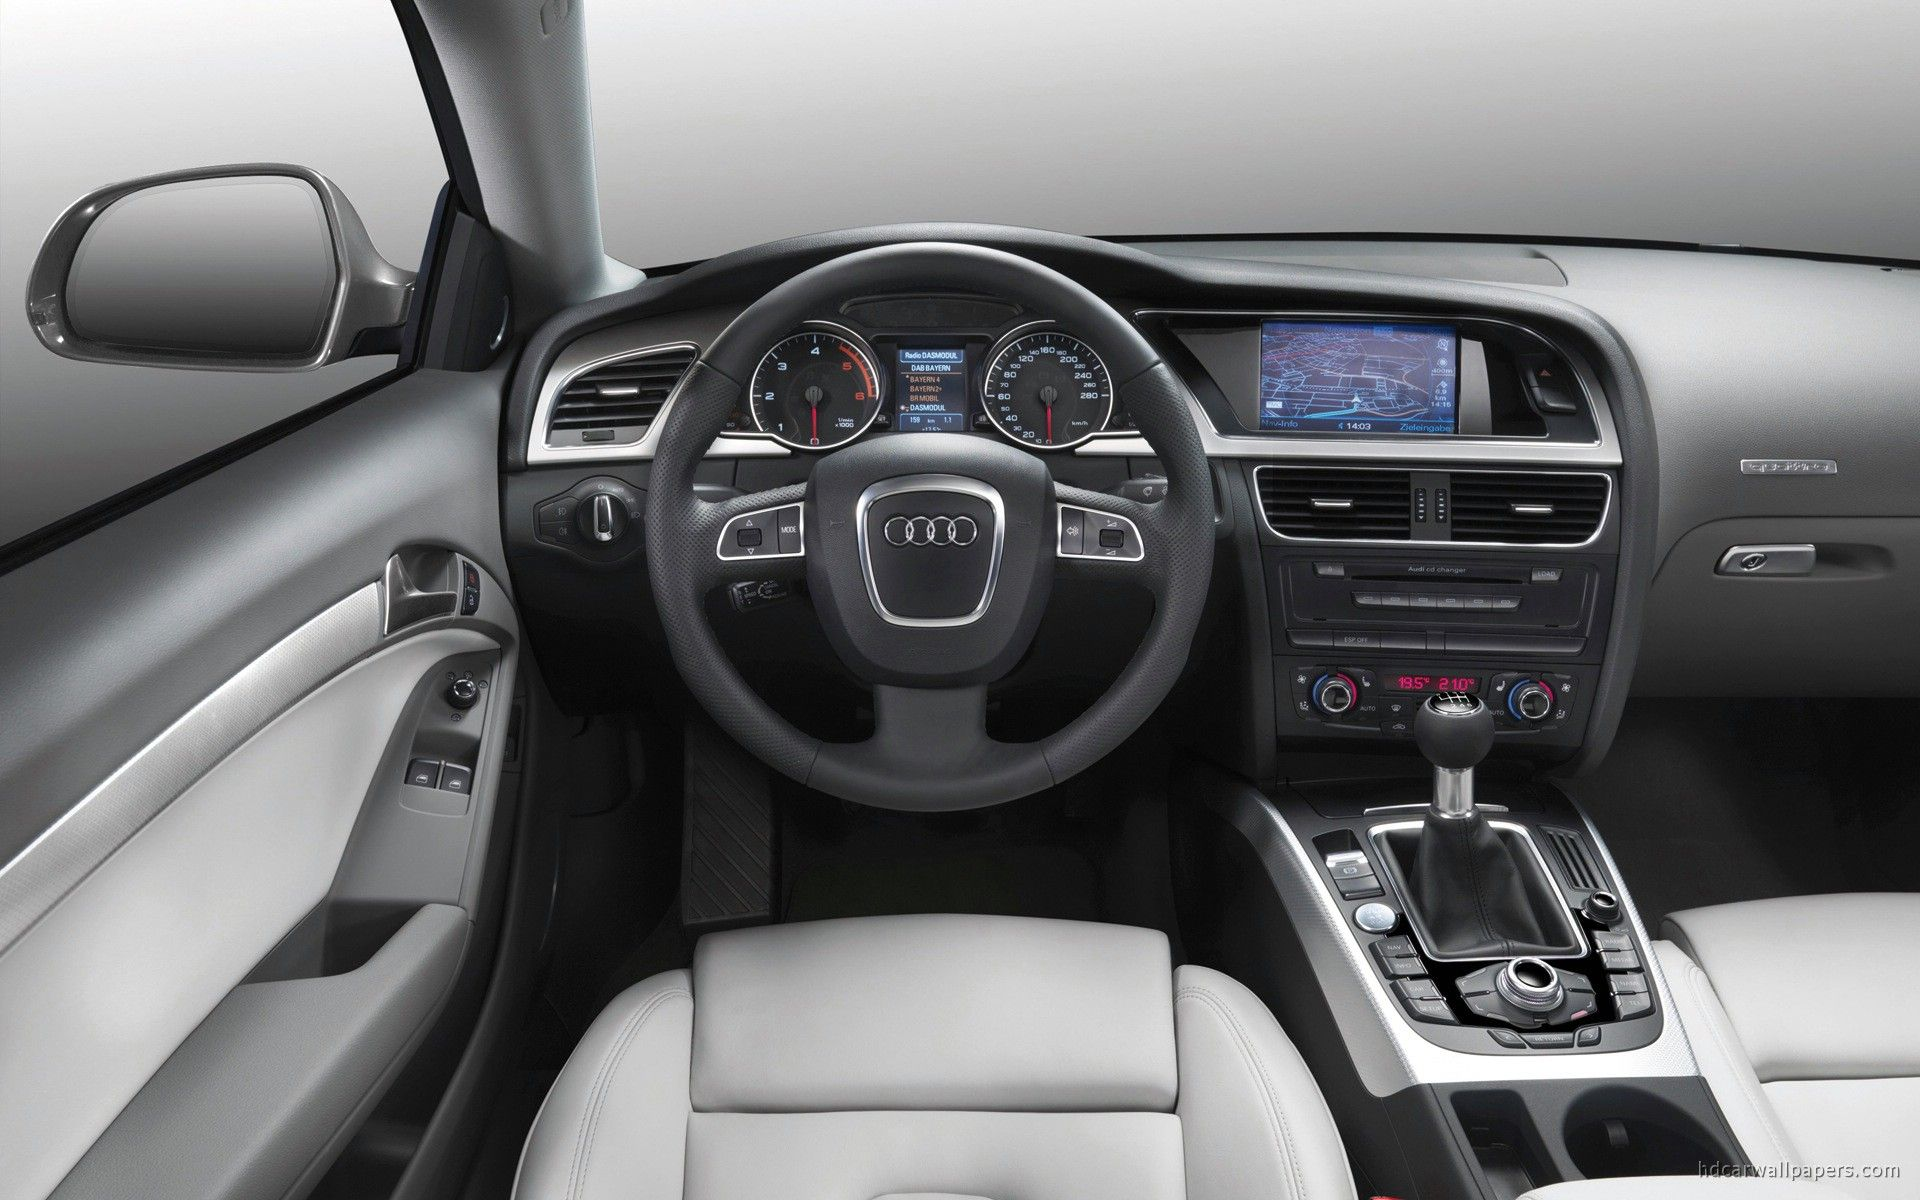 Audi A5 Interior Wallpaper Audi A5 Interior Audi A5 Audi Cars